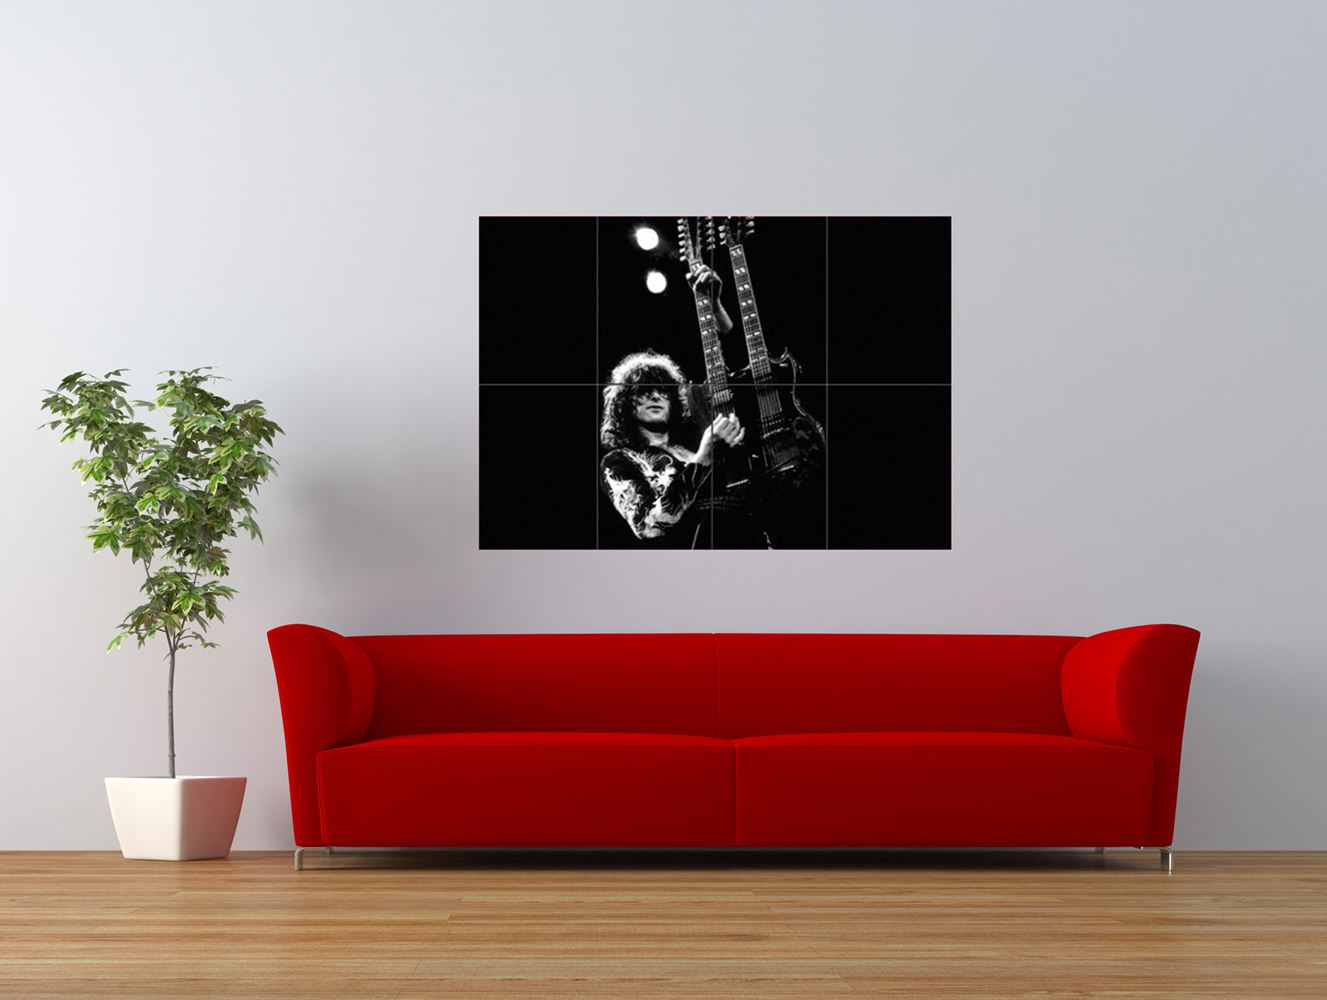 jimmy page led zeppelin cult guitar hero giant art print panel poster nor0103 ebay. Black Bedroom Furniture Sets. Home Design Ideas